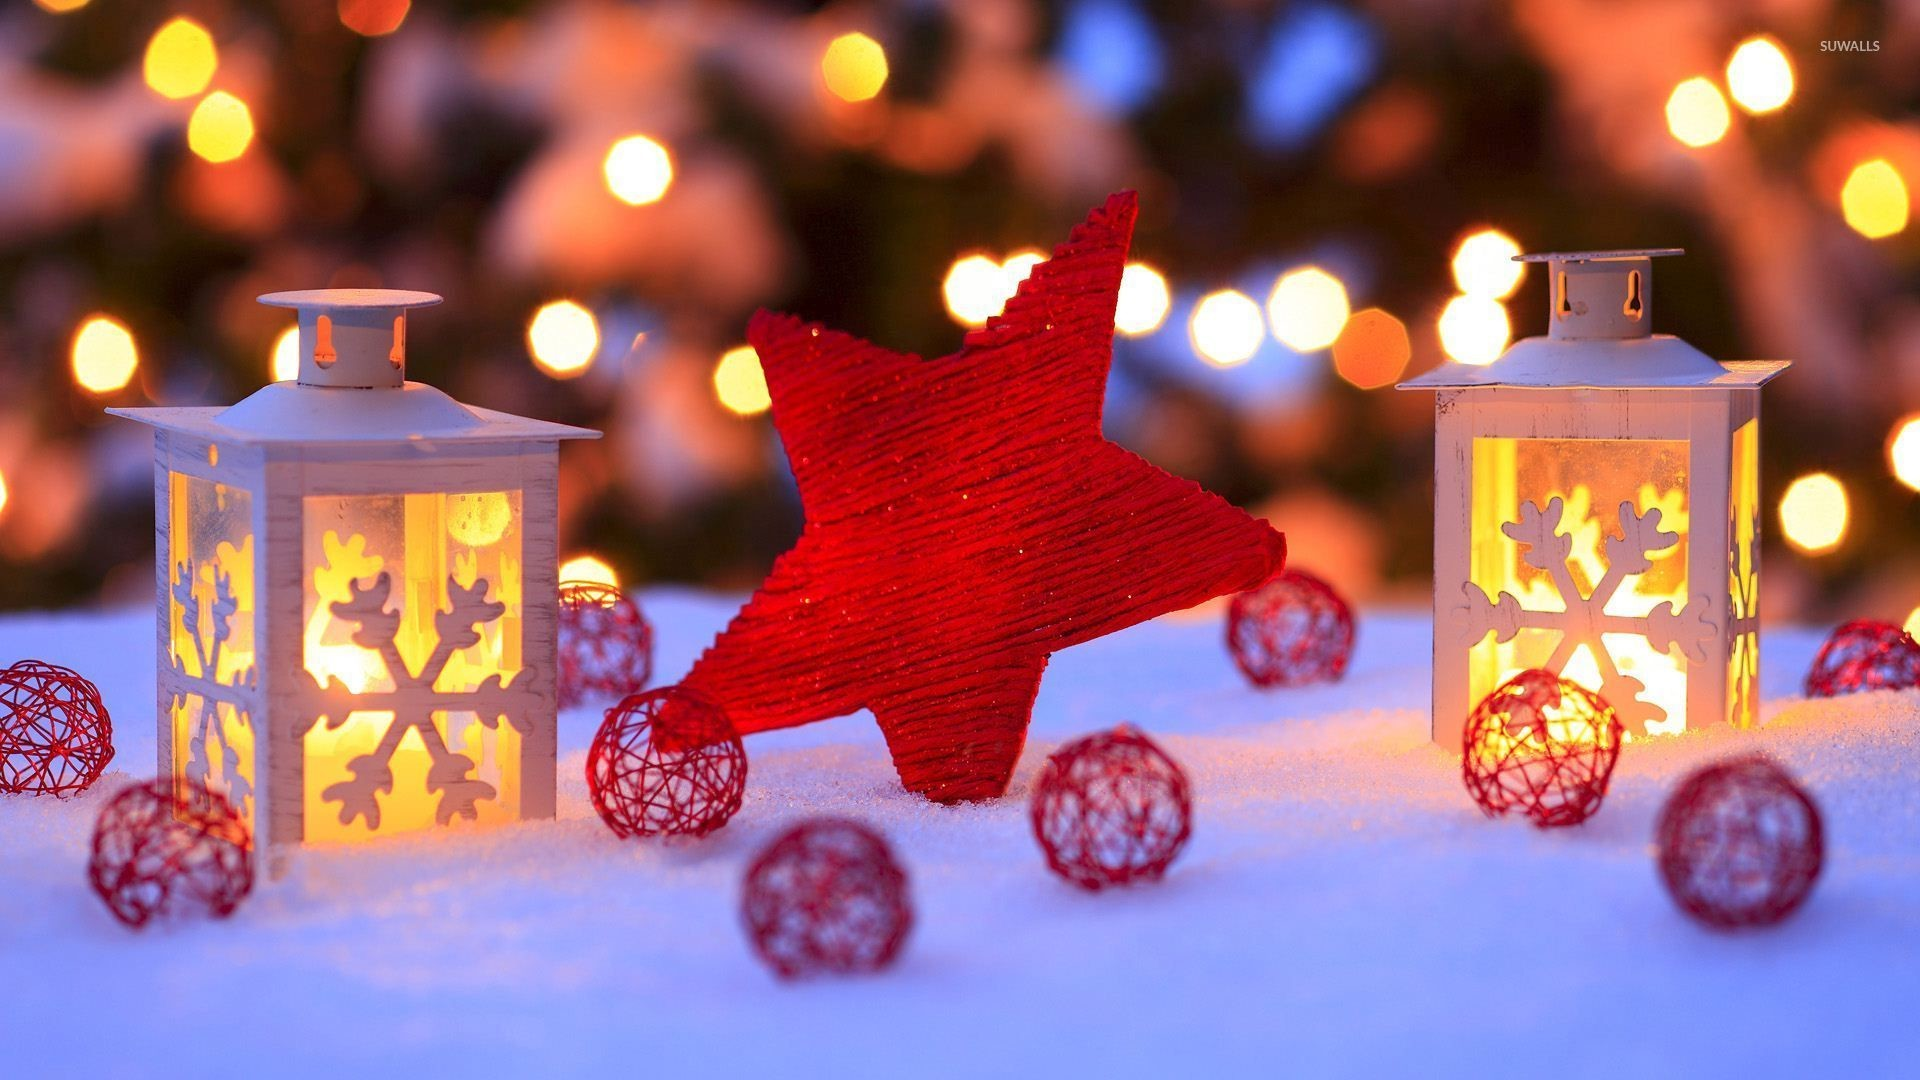 Red star in the snow by the candles wallpaper